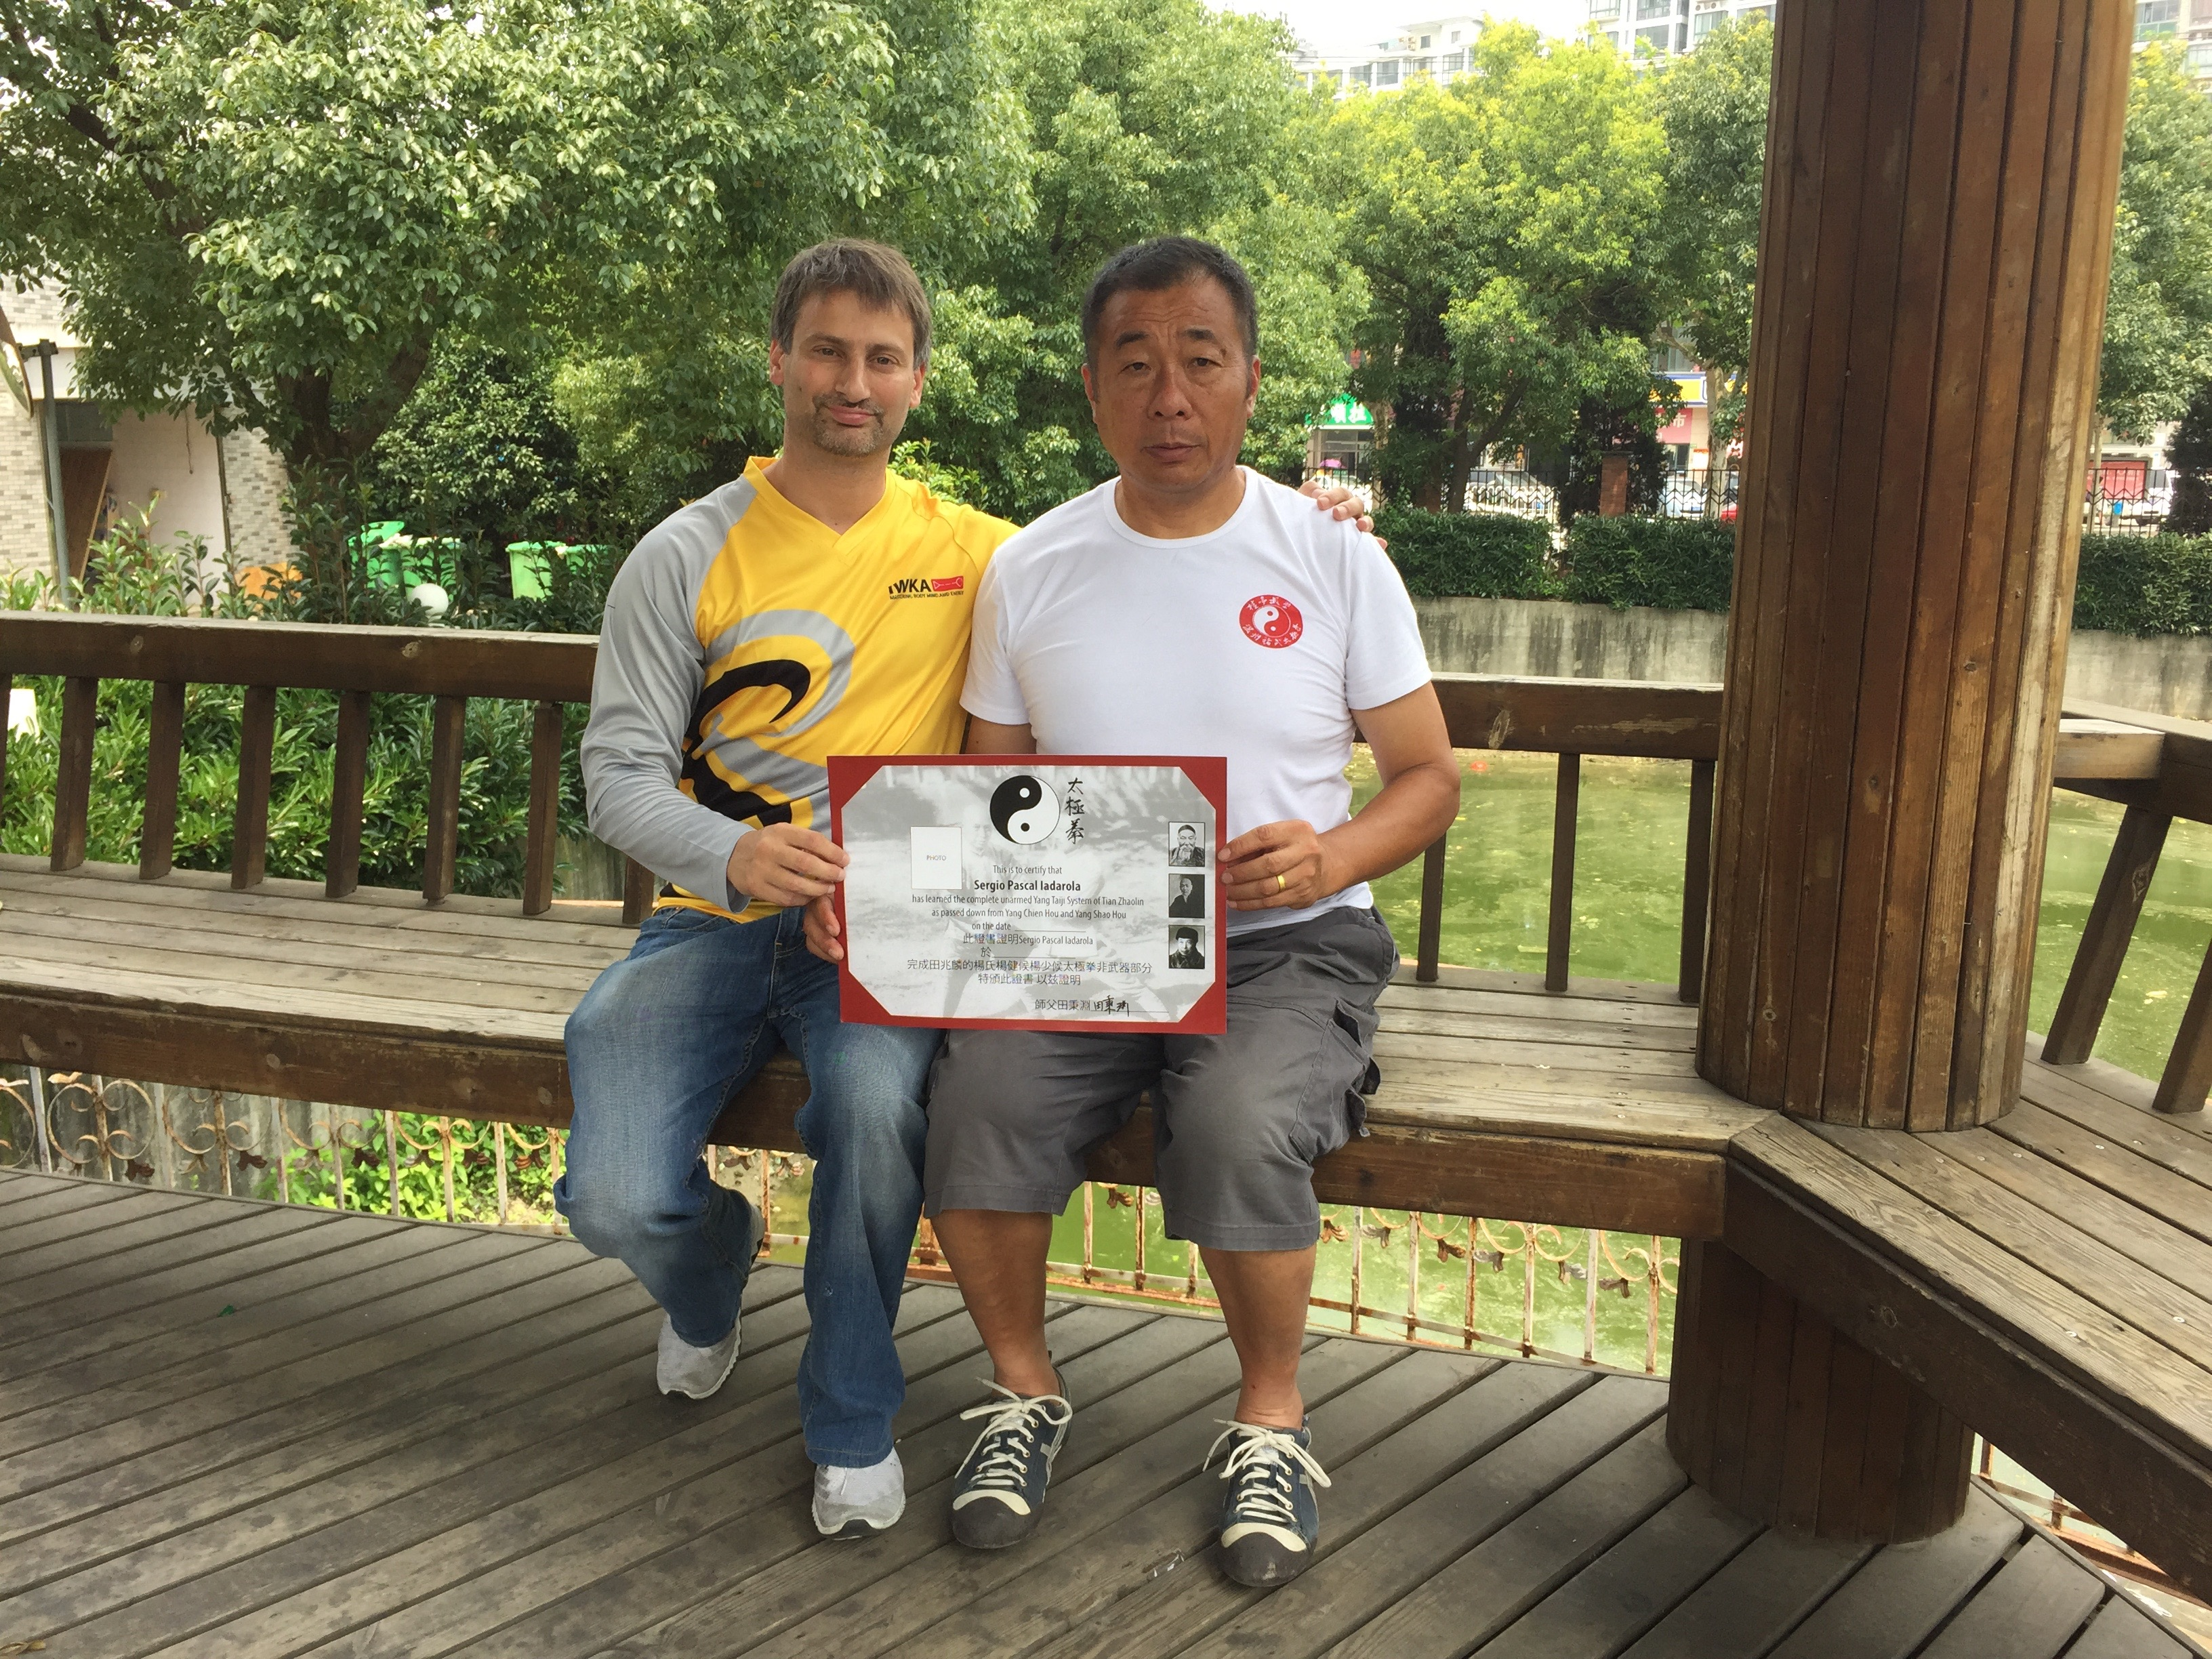 Receiving the certificate of having finished the unarmed curriculum of the Yang Shao Hou and Tian Zhaolin lineage